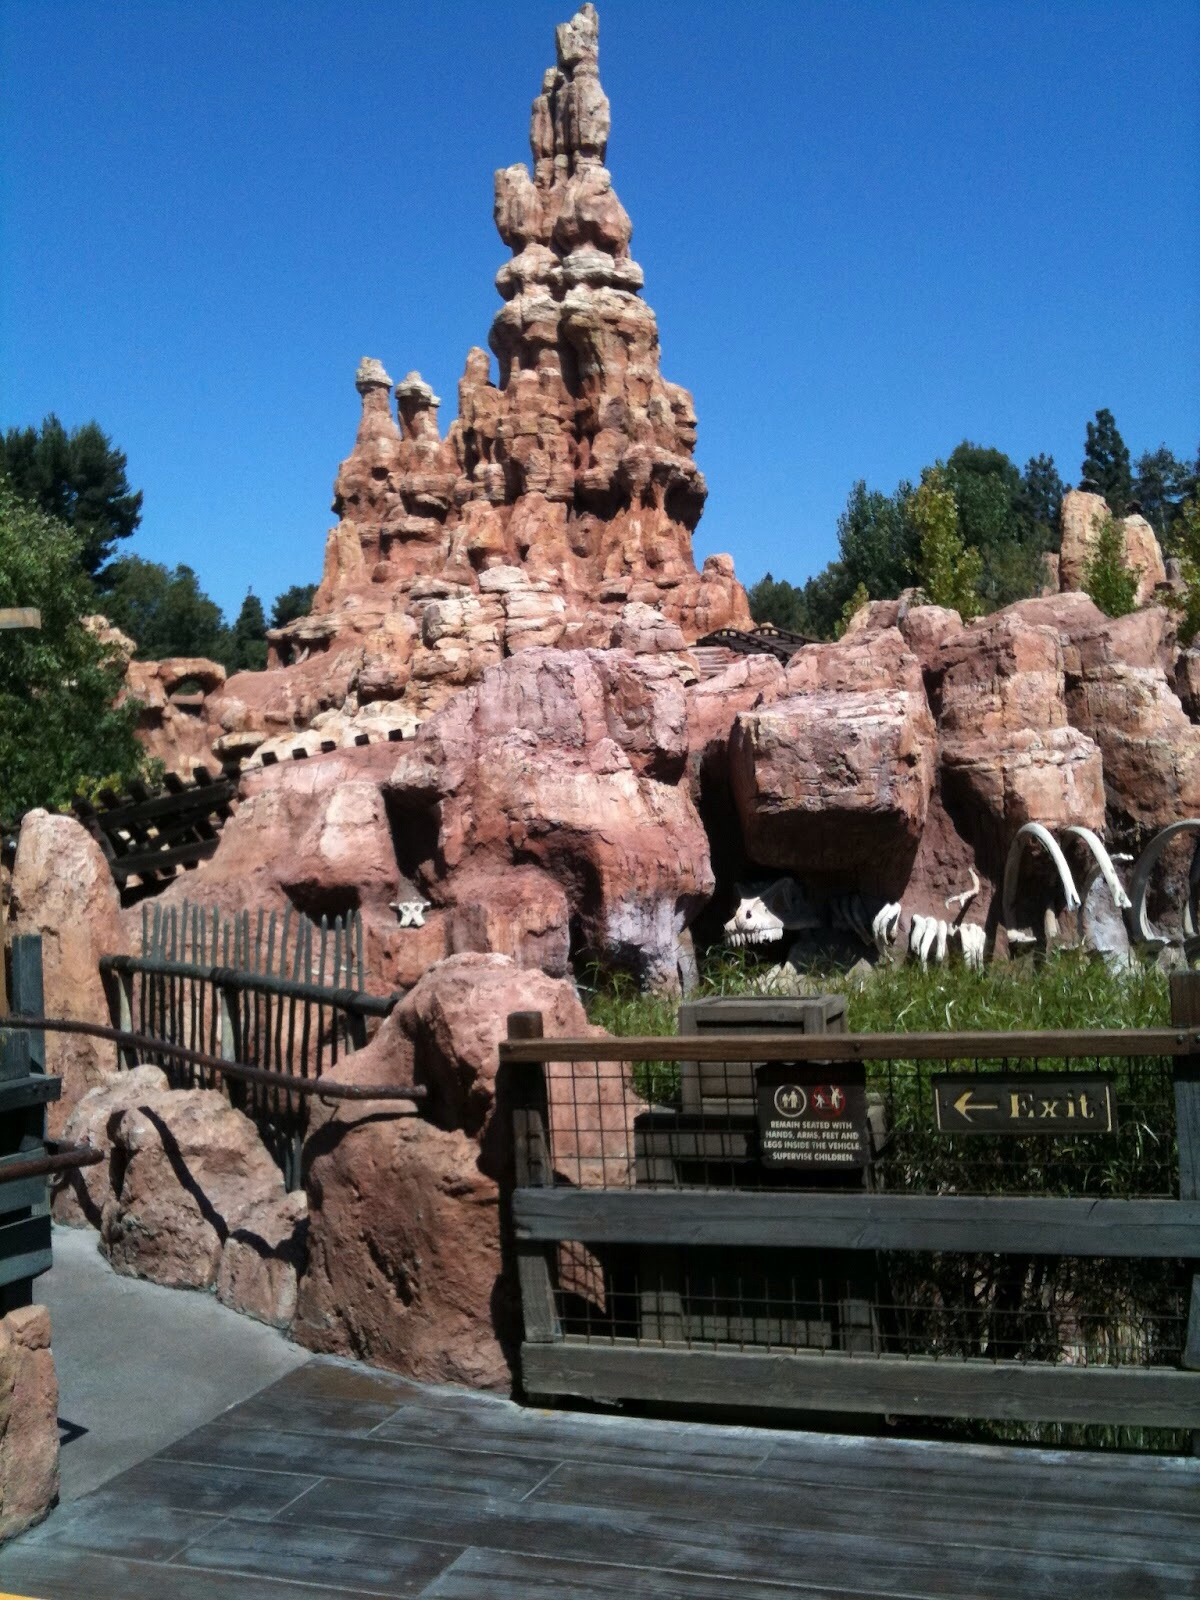 Disneyland's Big Thunder Mountain Railroad reopening is set for March 17